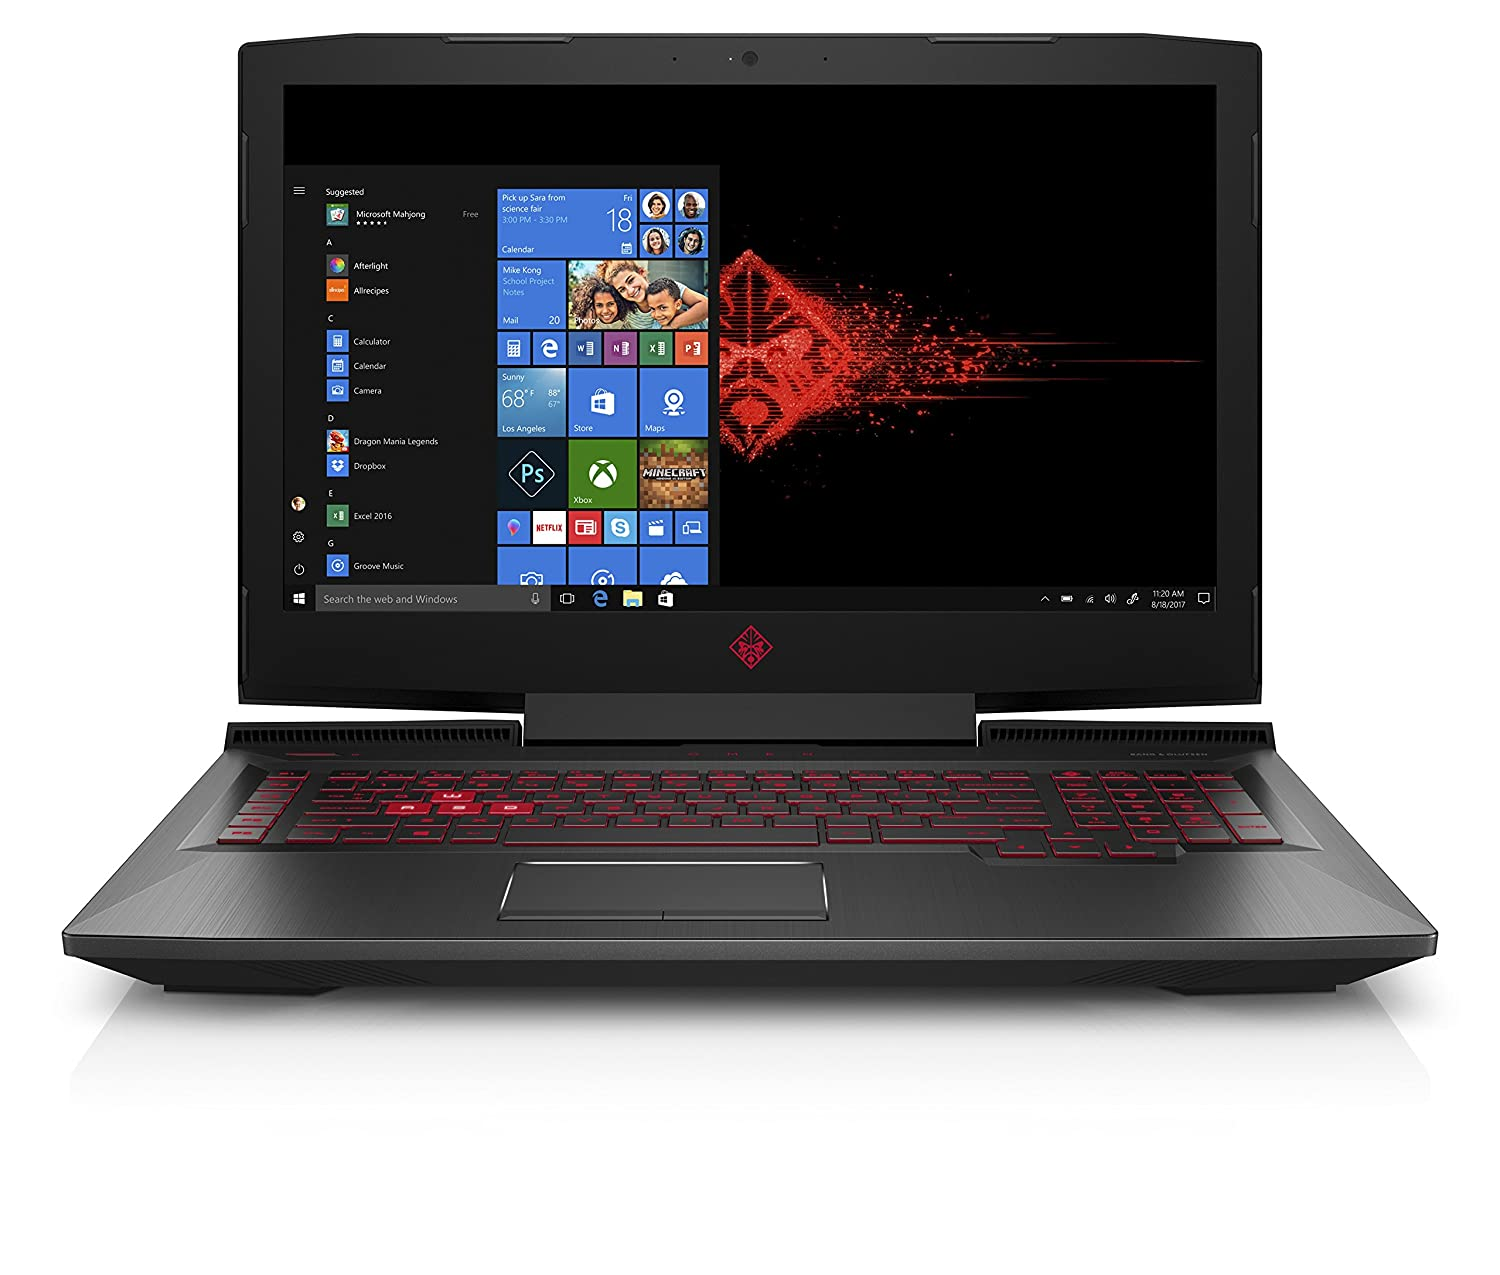 OMEN by HP 17-inch Gaming Laptop w/ 144Hz Anti-Glare G-Sync Display, i7-8750H, GeForce GTX 1060 6 GB, 16GB 2666MHz RAM, 1TB HDD & 128 GB PCIE SSD, Windows 10 Home (17-an120nr, Black), Metal